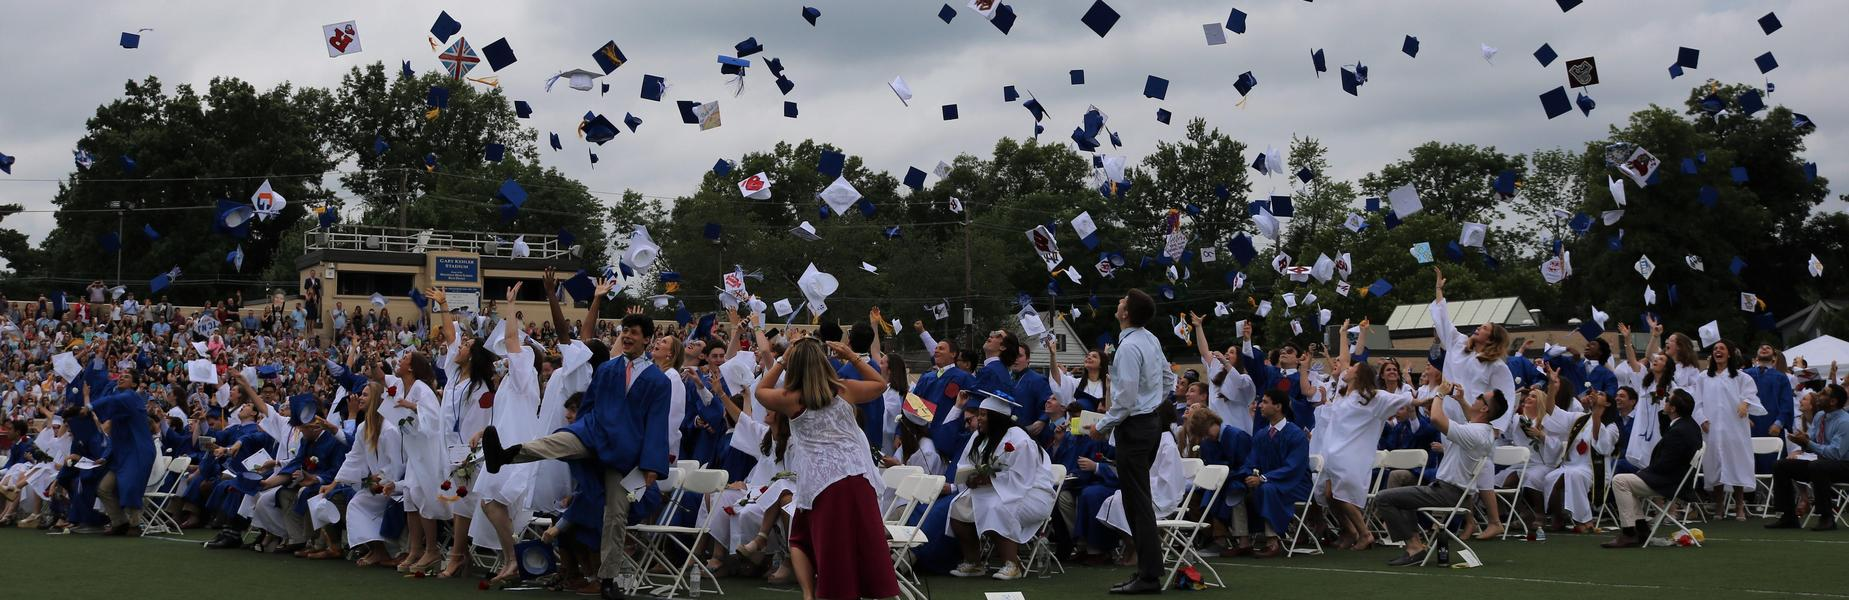 WHS graduates - Class of 2018 - toss caps into the air at commencement ceremony conclusion in June 2018.